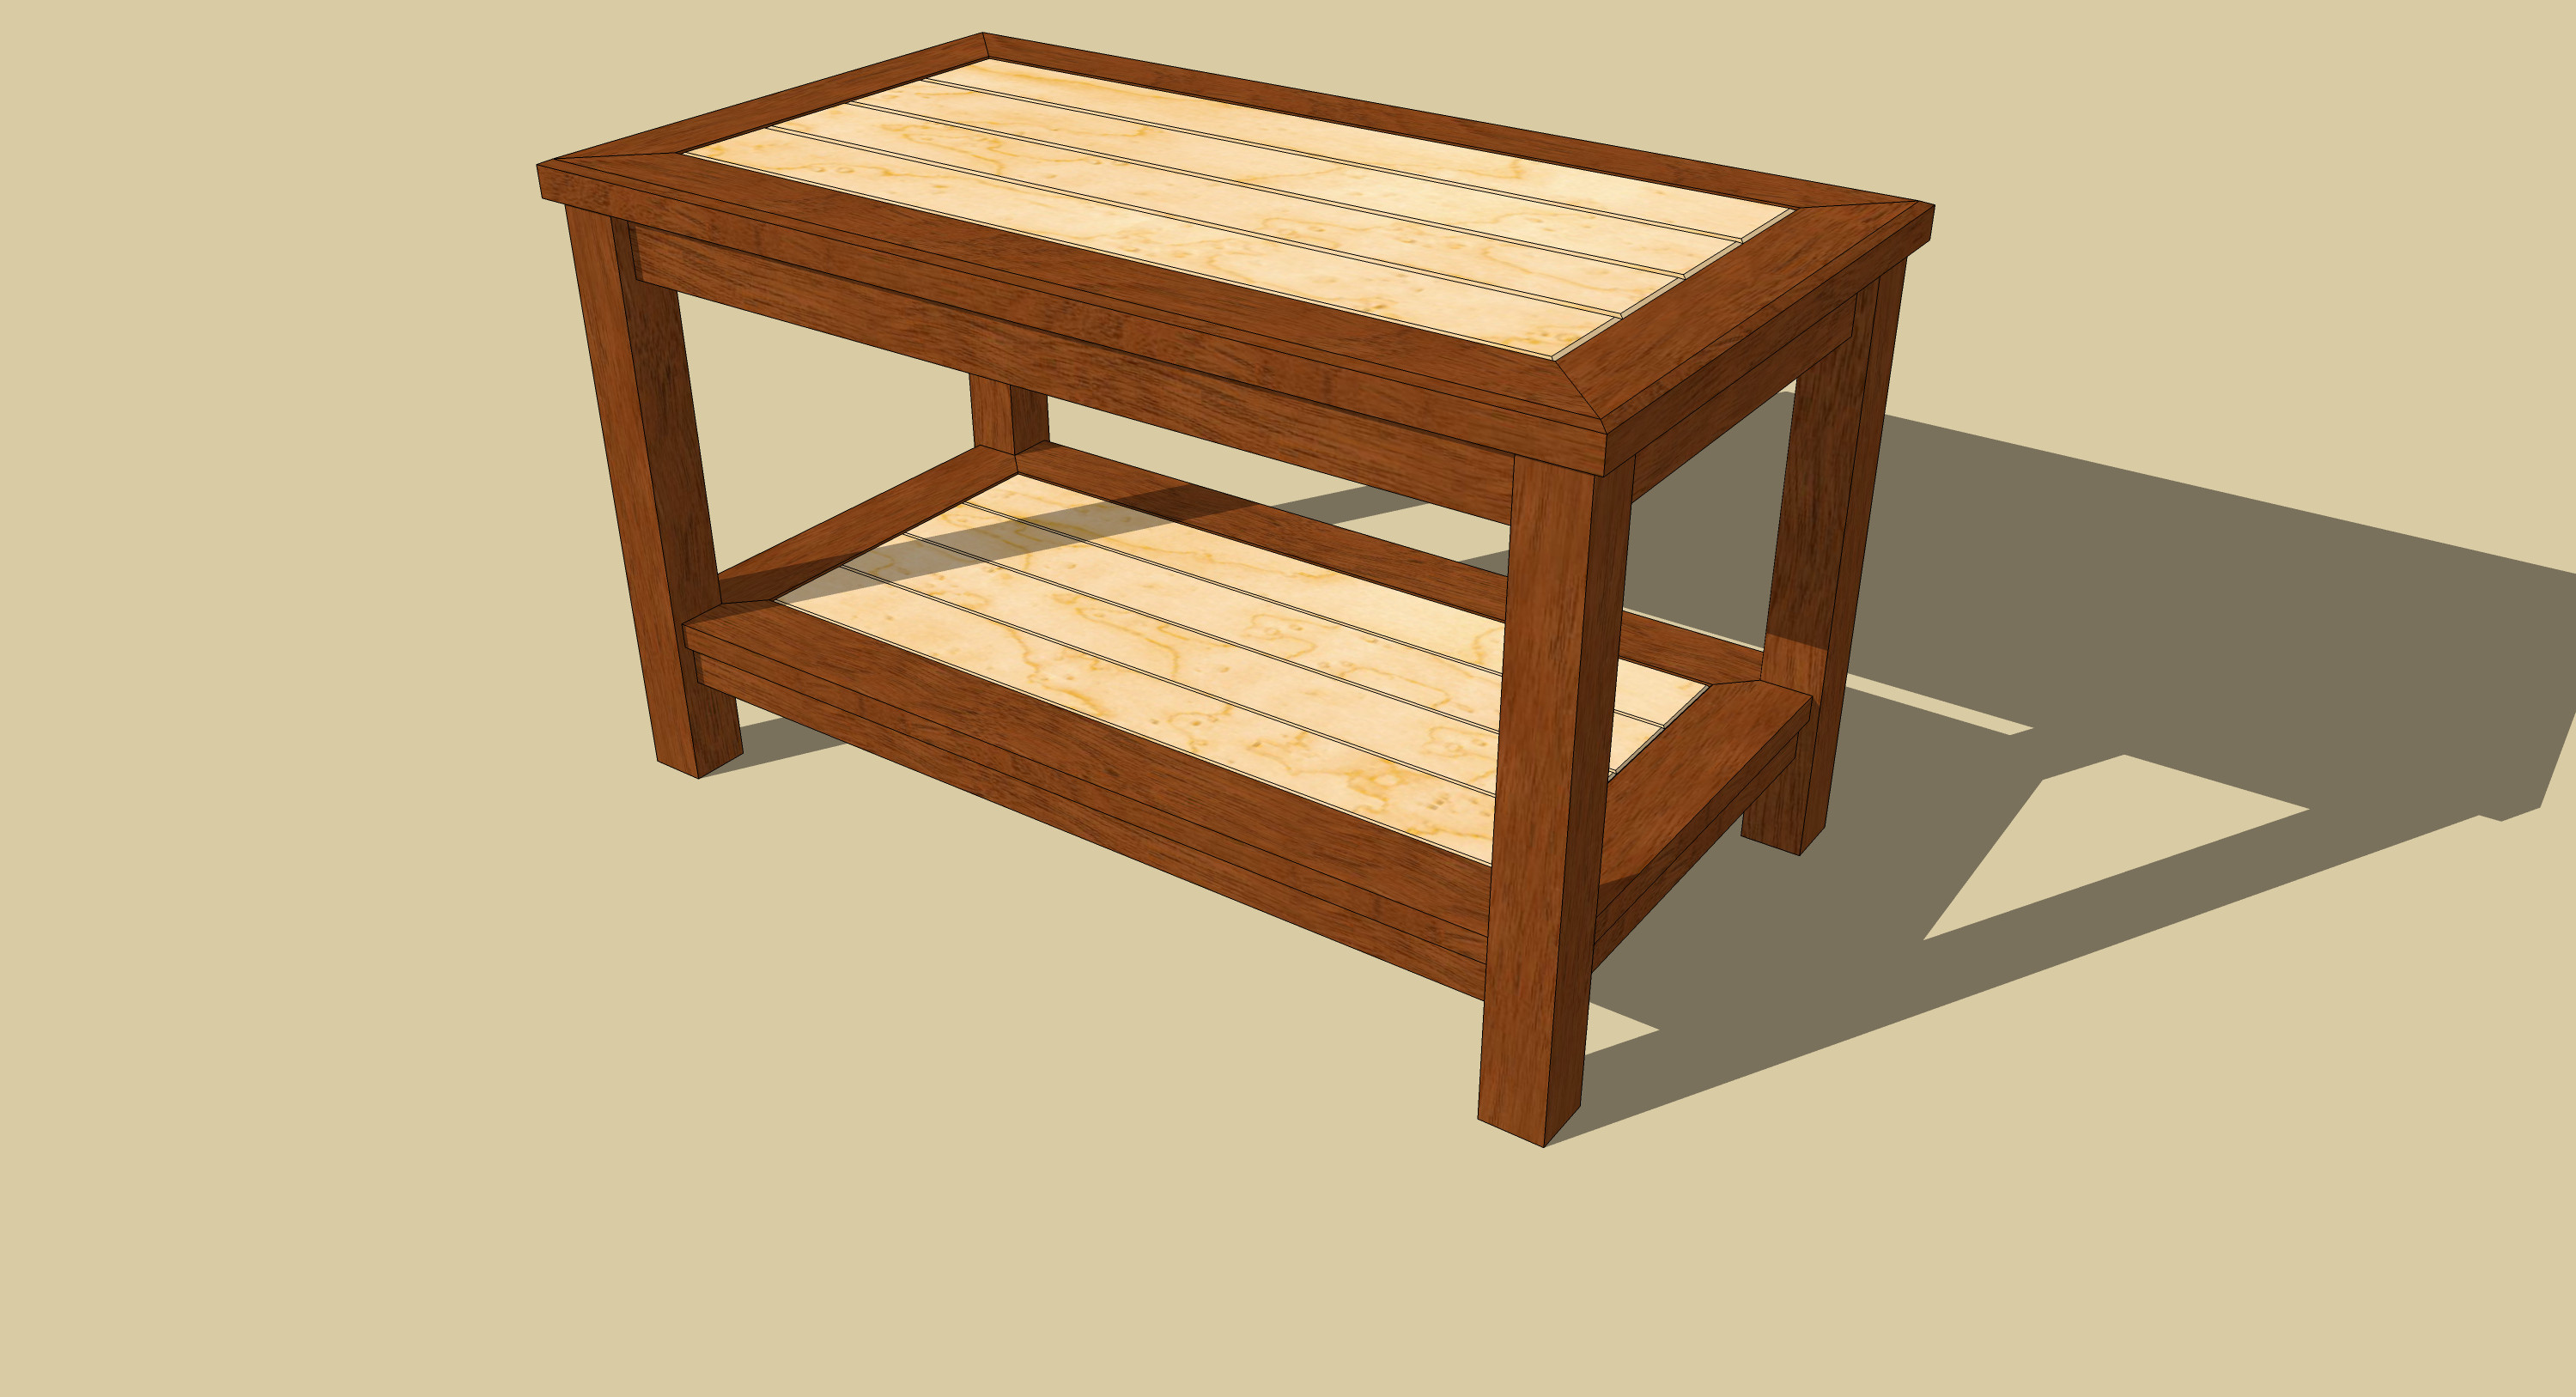 Best ideas about Coffee Table Plans . Save or Pin DIY Woodworking Plan Coffee Table Wooden PDF balsa wood Now.